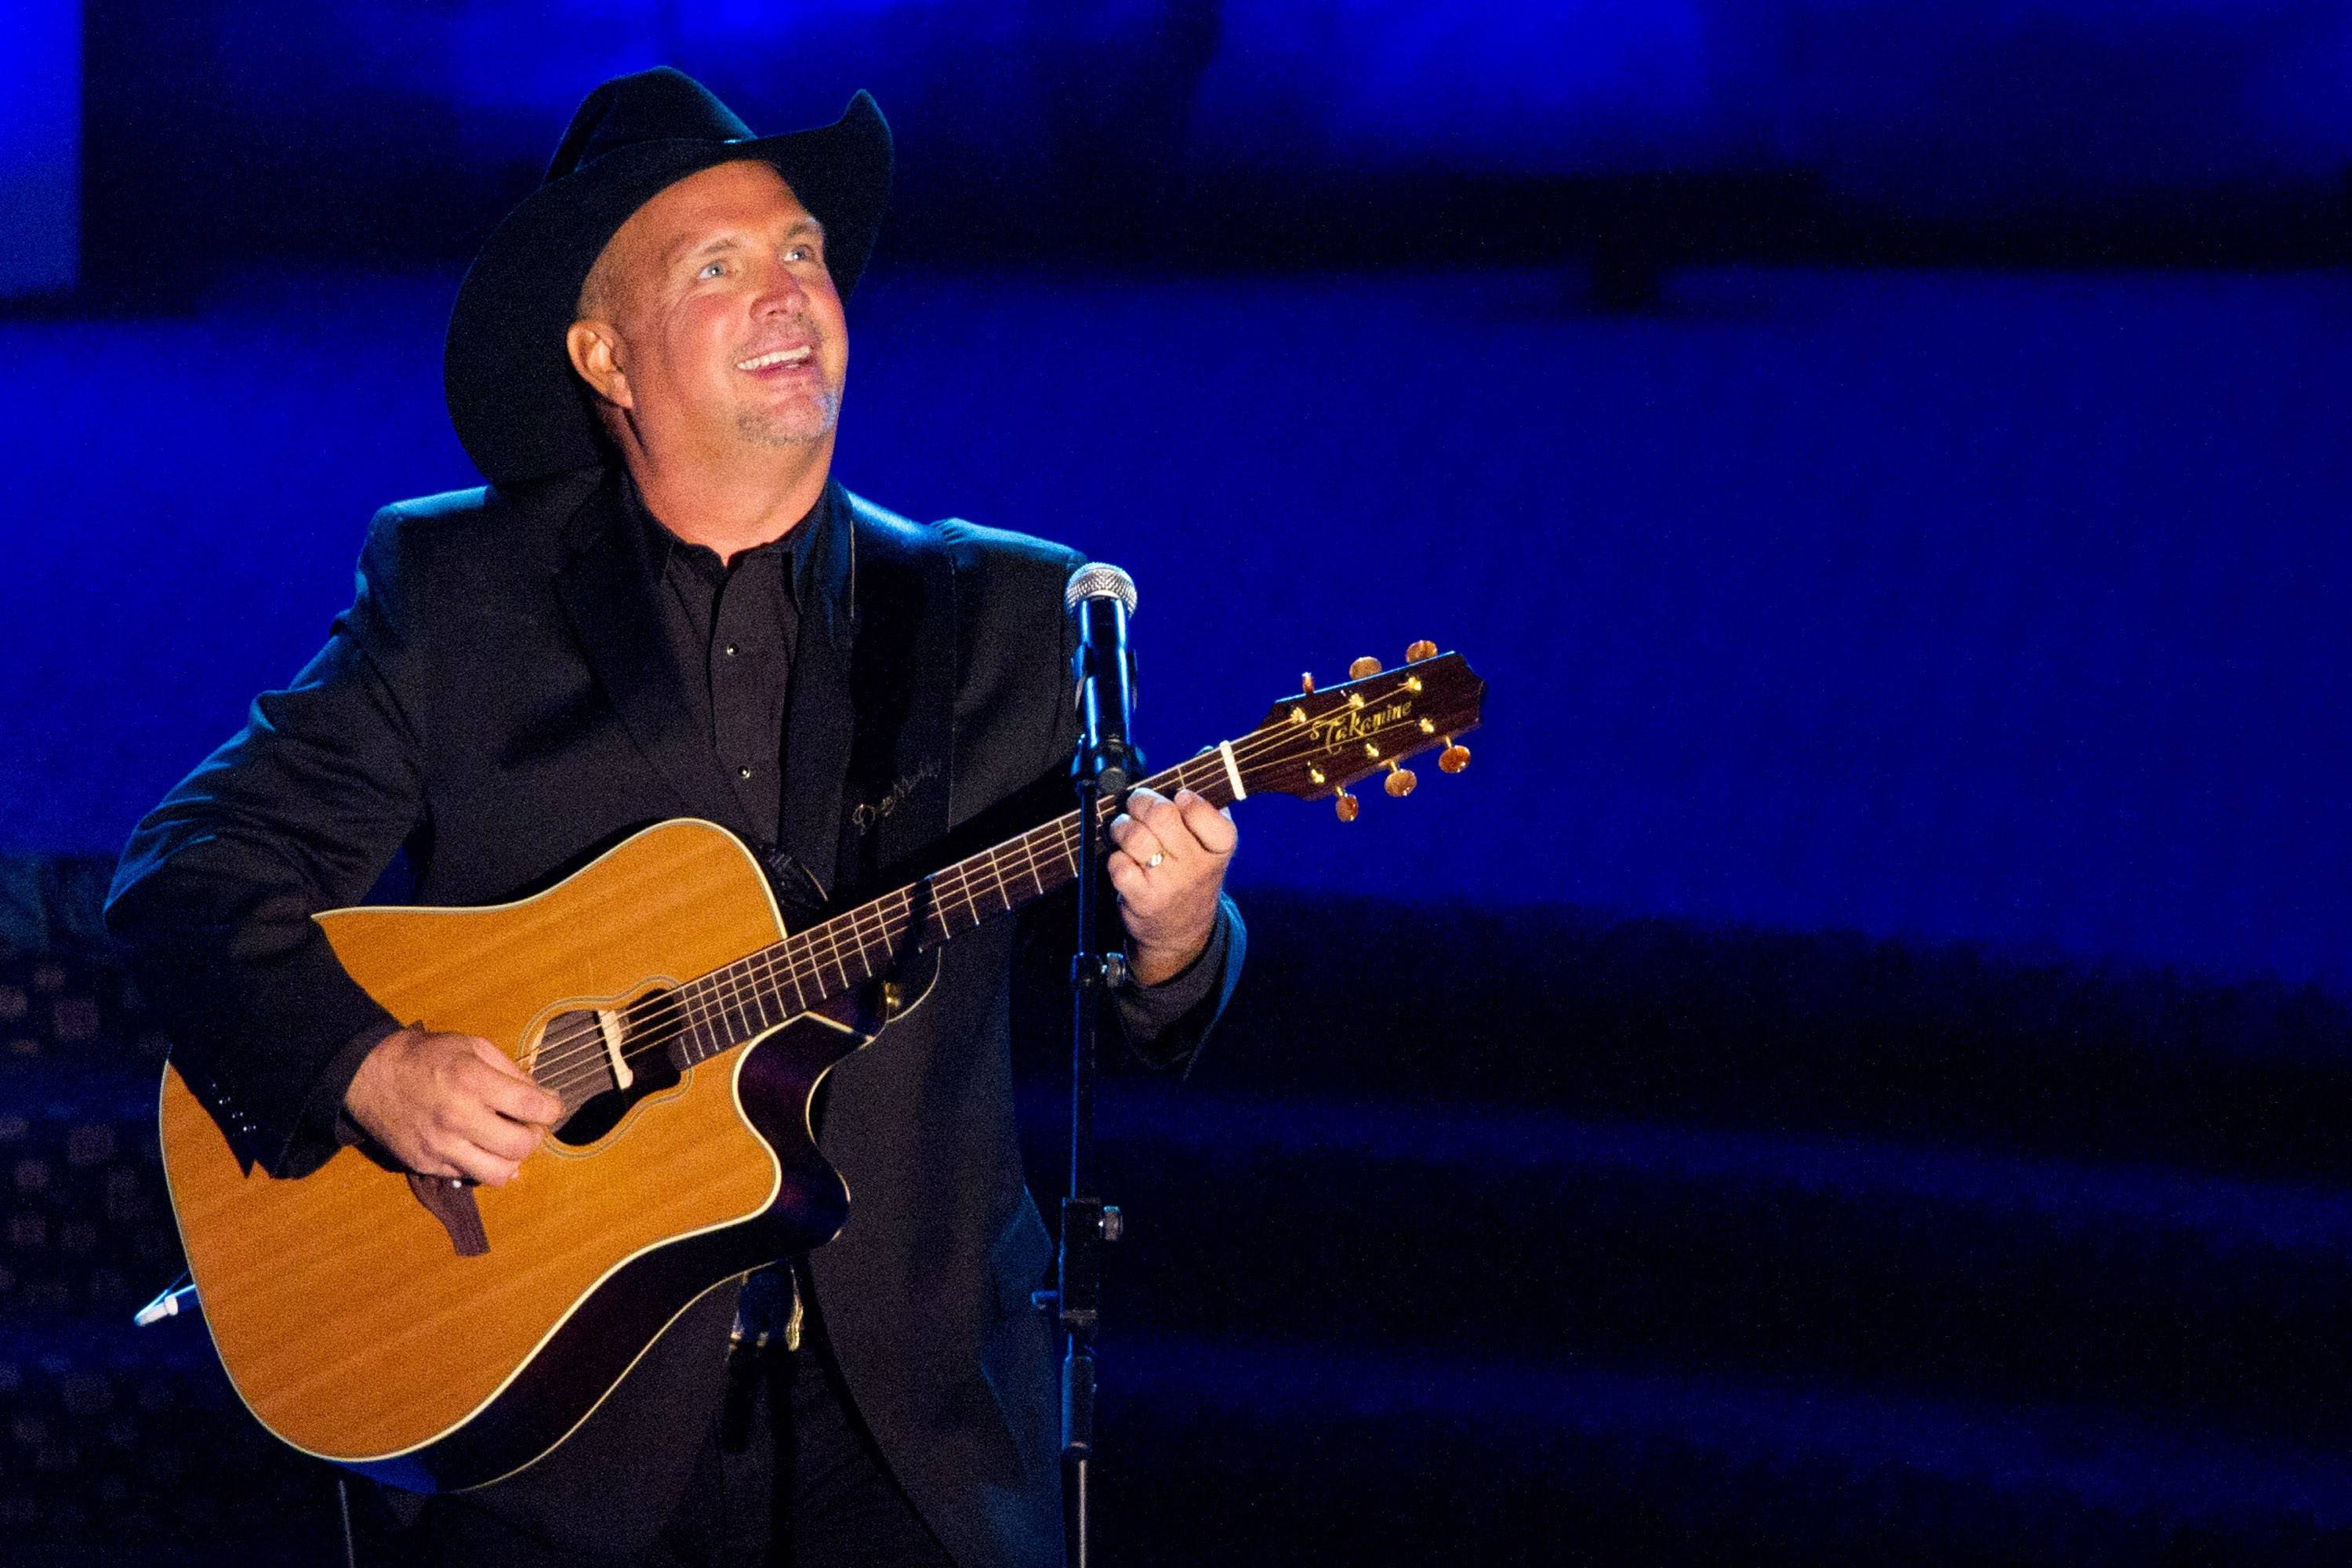 Country superstar Garth Brooks has added an 11th show to his Garth Brooks World Tour with Trisha Yearwood, running Sept. 4-14 at the Allstate Arena in Rosemont.